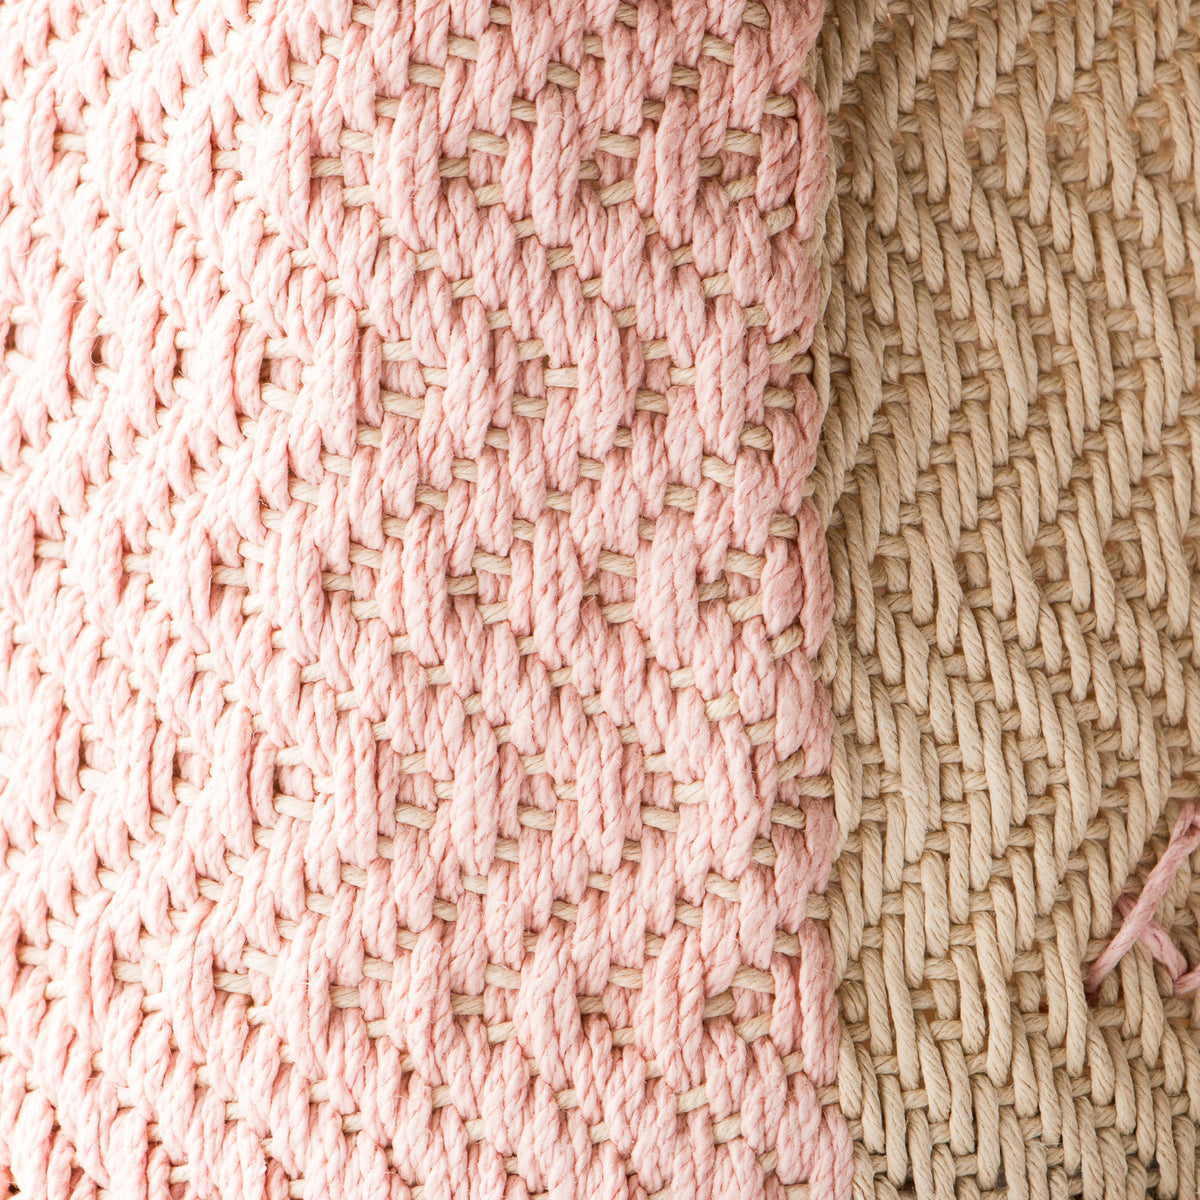 Detail of Pink & Ecru - Hemp Table Basket (Medium) - Handwoven in Montreal, Quebec, Canada - Sold by Chic & Basta